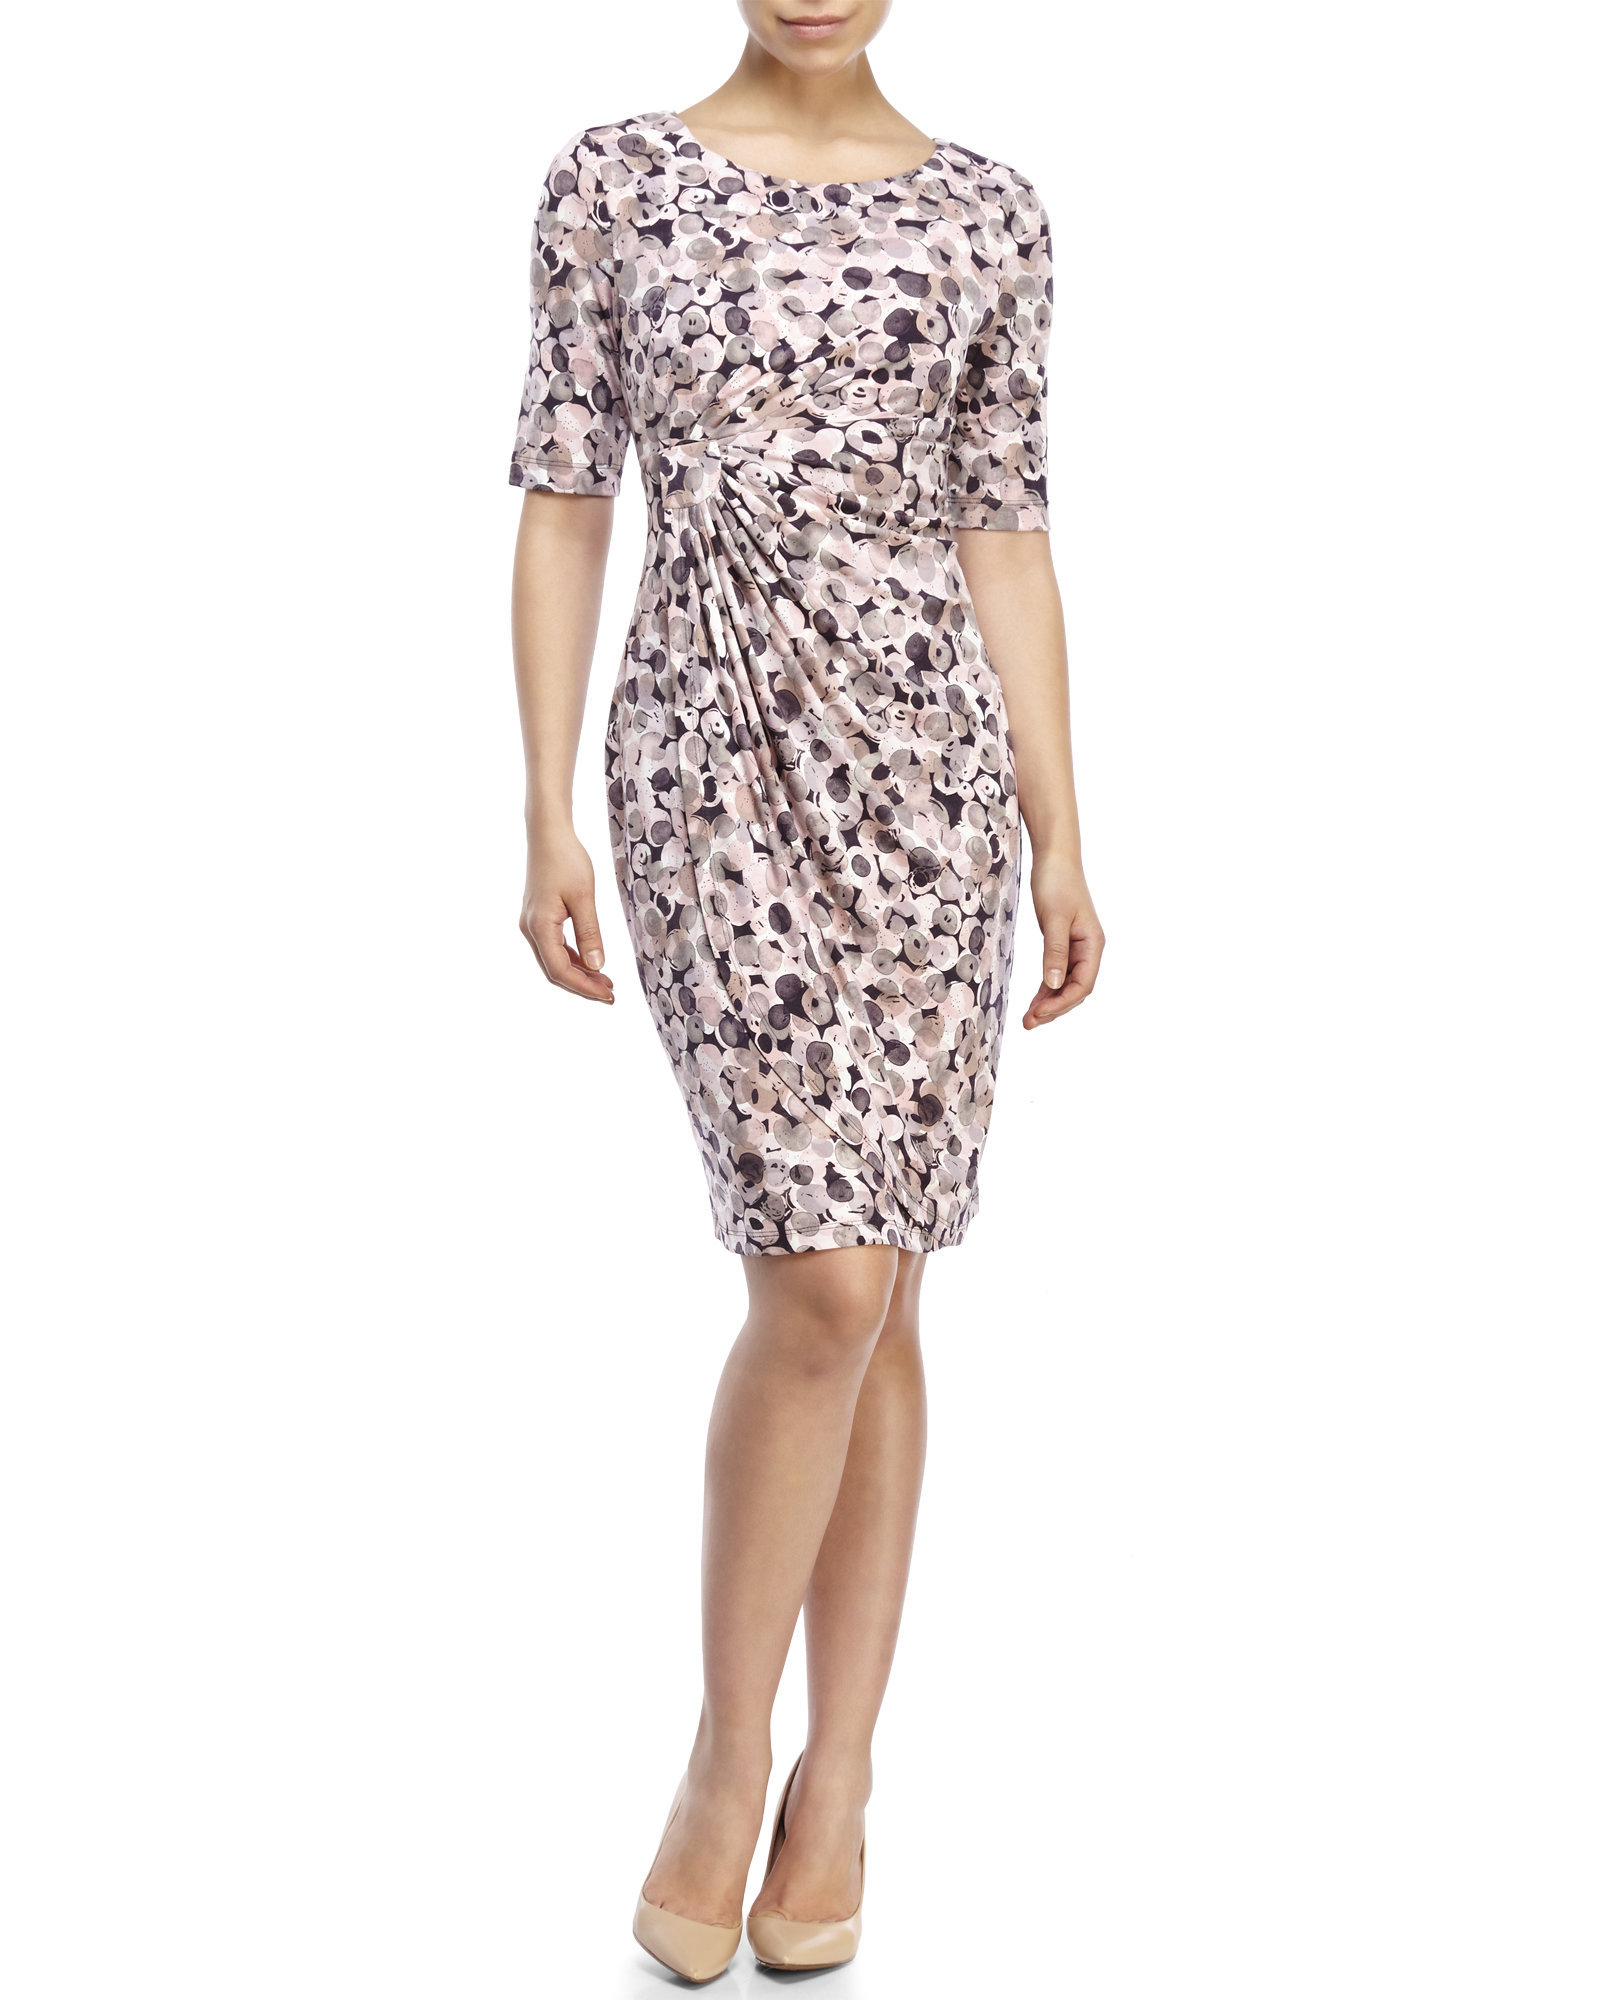 43ea57aa Connected Apparel Petite Shirred Bubble Print Dress in Pink - Lyst